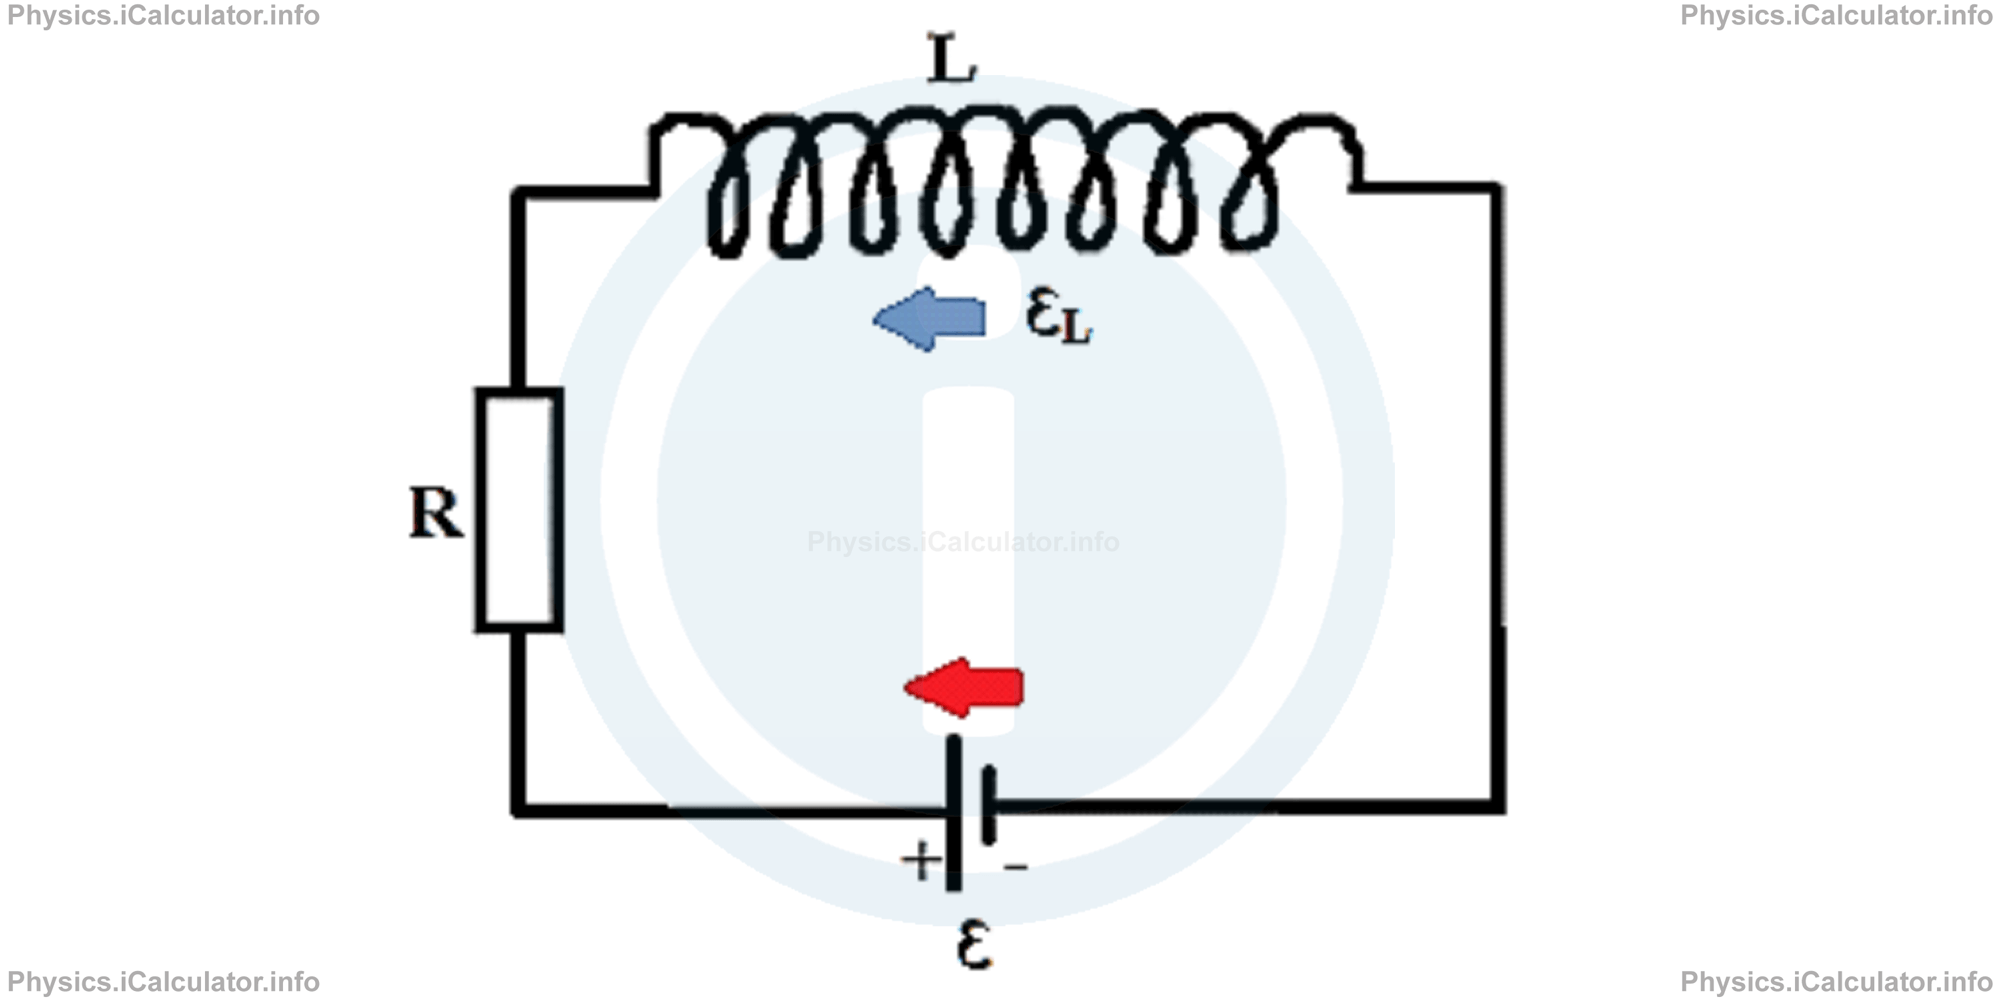 Physics Tutorials: This image provides visual information for the physics tutorial Energy Stored in a Magnetic Field. Energy Density of a Magnetic Field. Mutual Induction